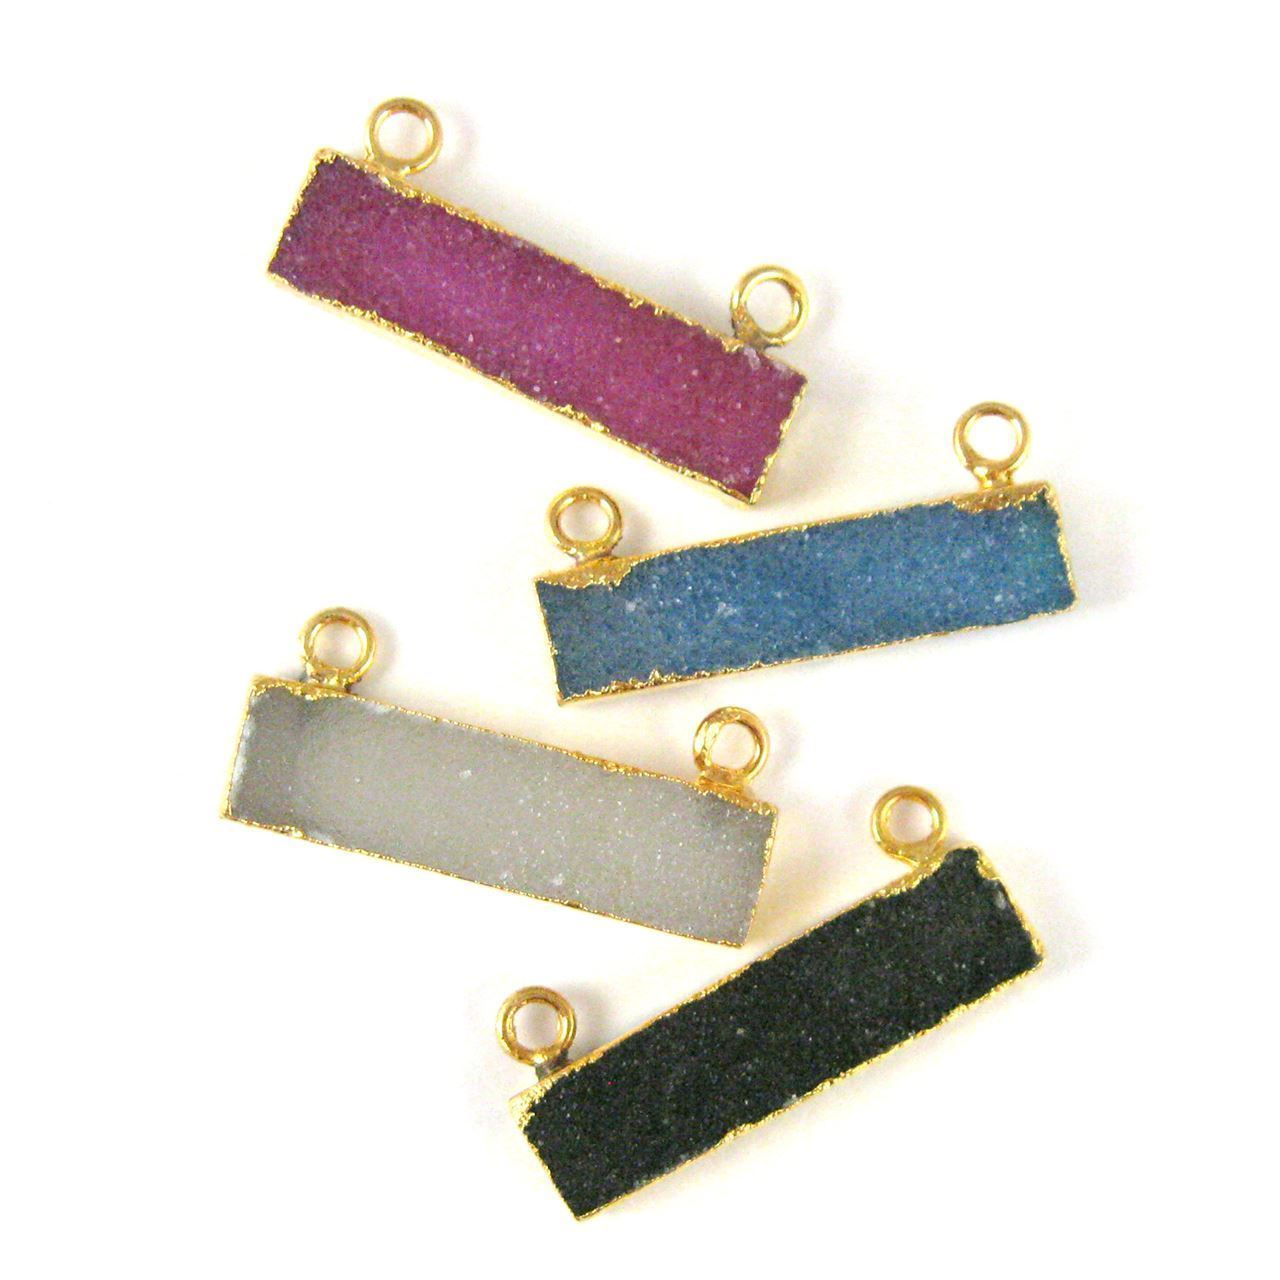 Natural Druzy Agate Bar Connector Pendant, 24K Gold plated Long Horizontal Bar- Pink